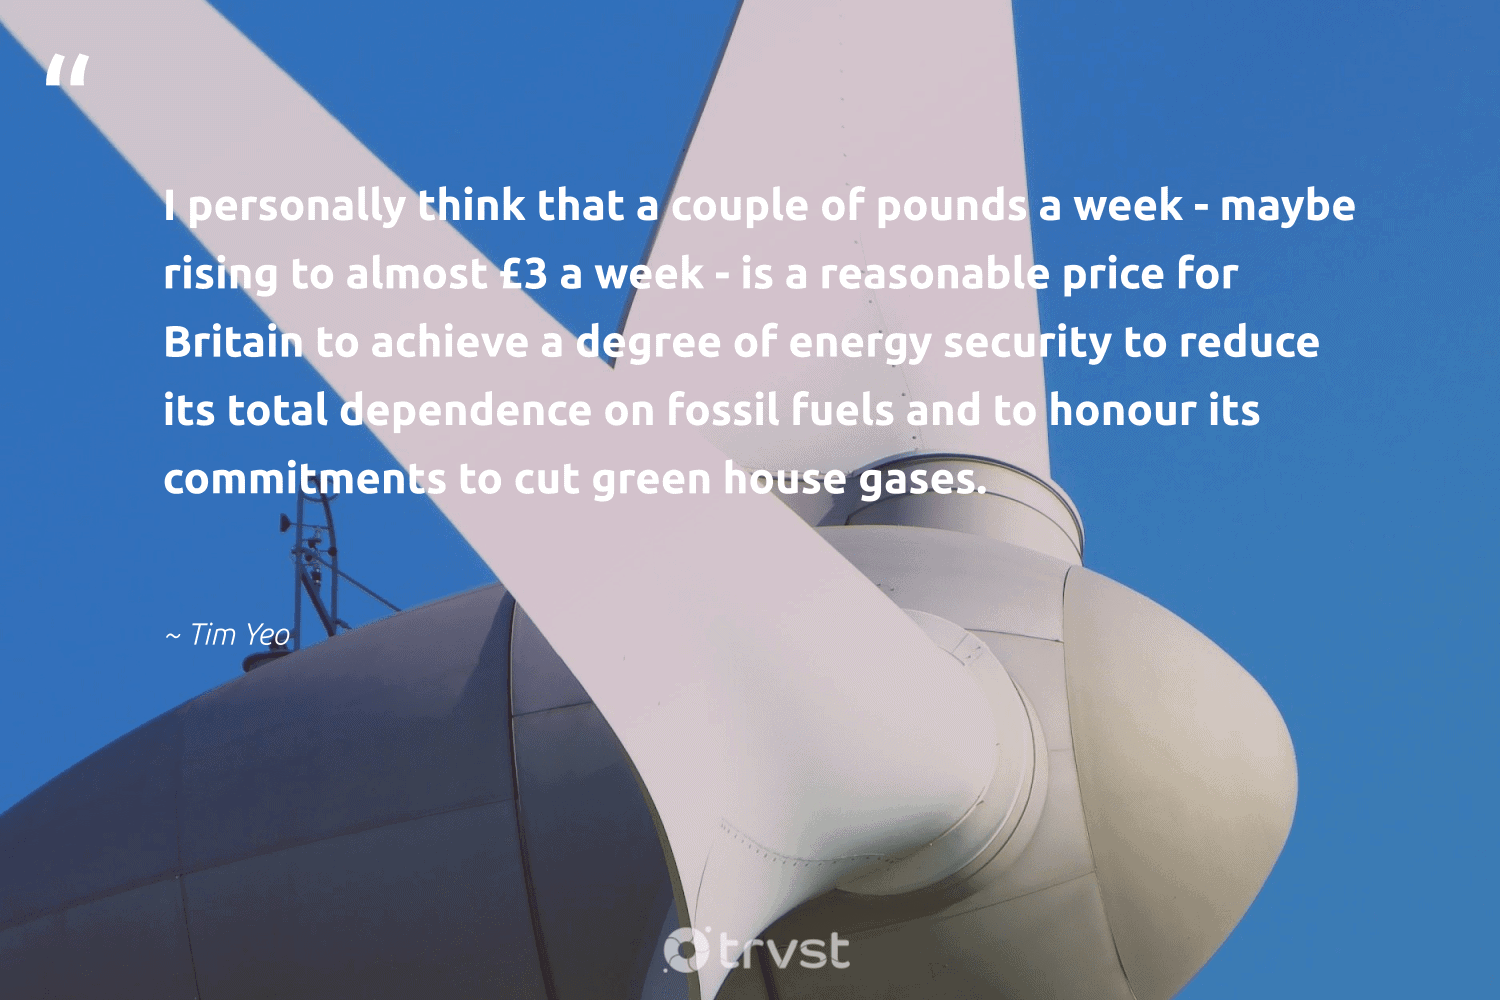 """""""I personally think that a couple of pounds a week - maybe rising to almost £3 a week - is a reasonable price for Britain to achieve a degree of energy security to reduce its total dependence on fossil fuels and to honour its commitments to cut green house gases.""""  - Tim Yeo #trvst #quotes #reduce #green #energy #fossilfuels #fossil #refuse #sustainable #biodegradable #beinspired #upcycling"""